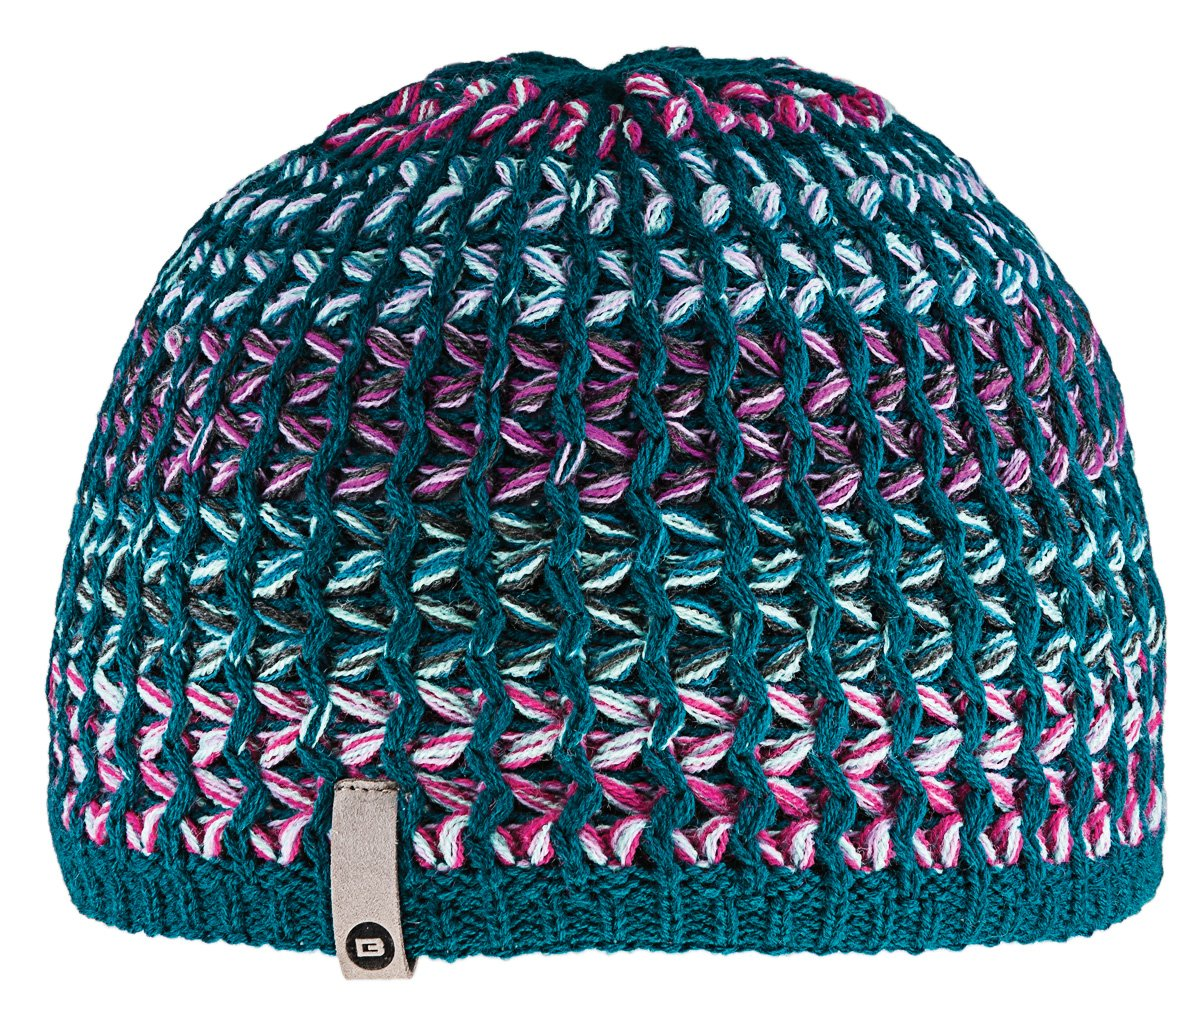 BULA Women's Color Beanie Bula Women's Color Beanie Tropic One Size ABCOL